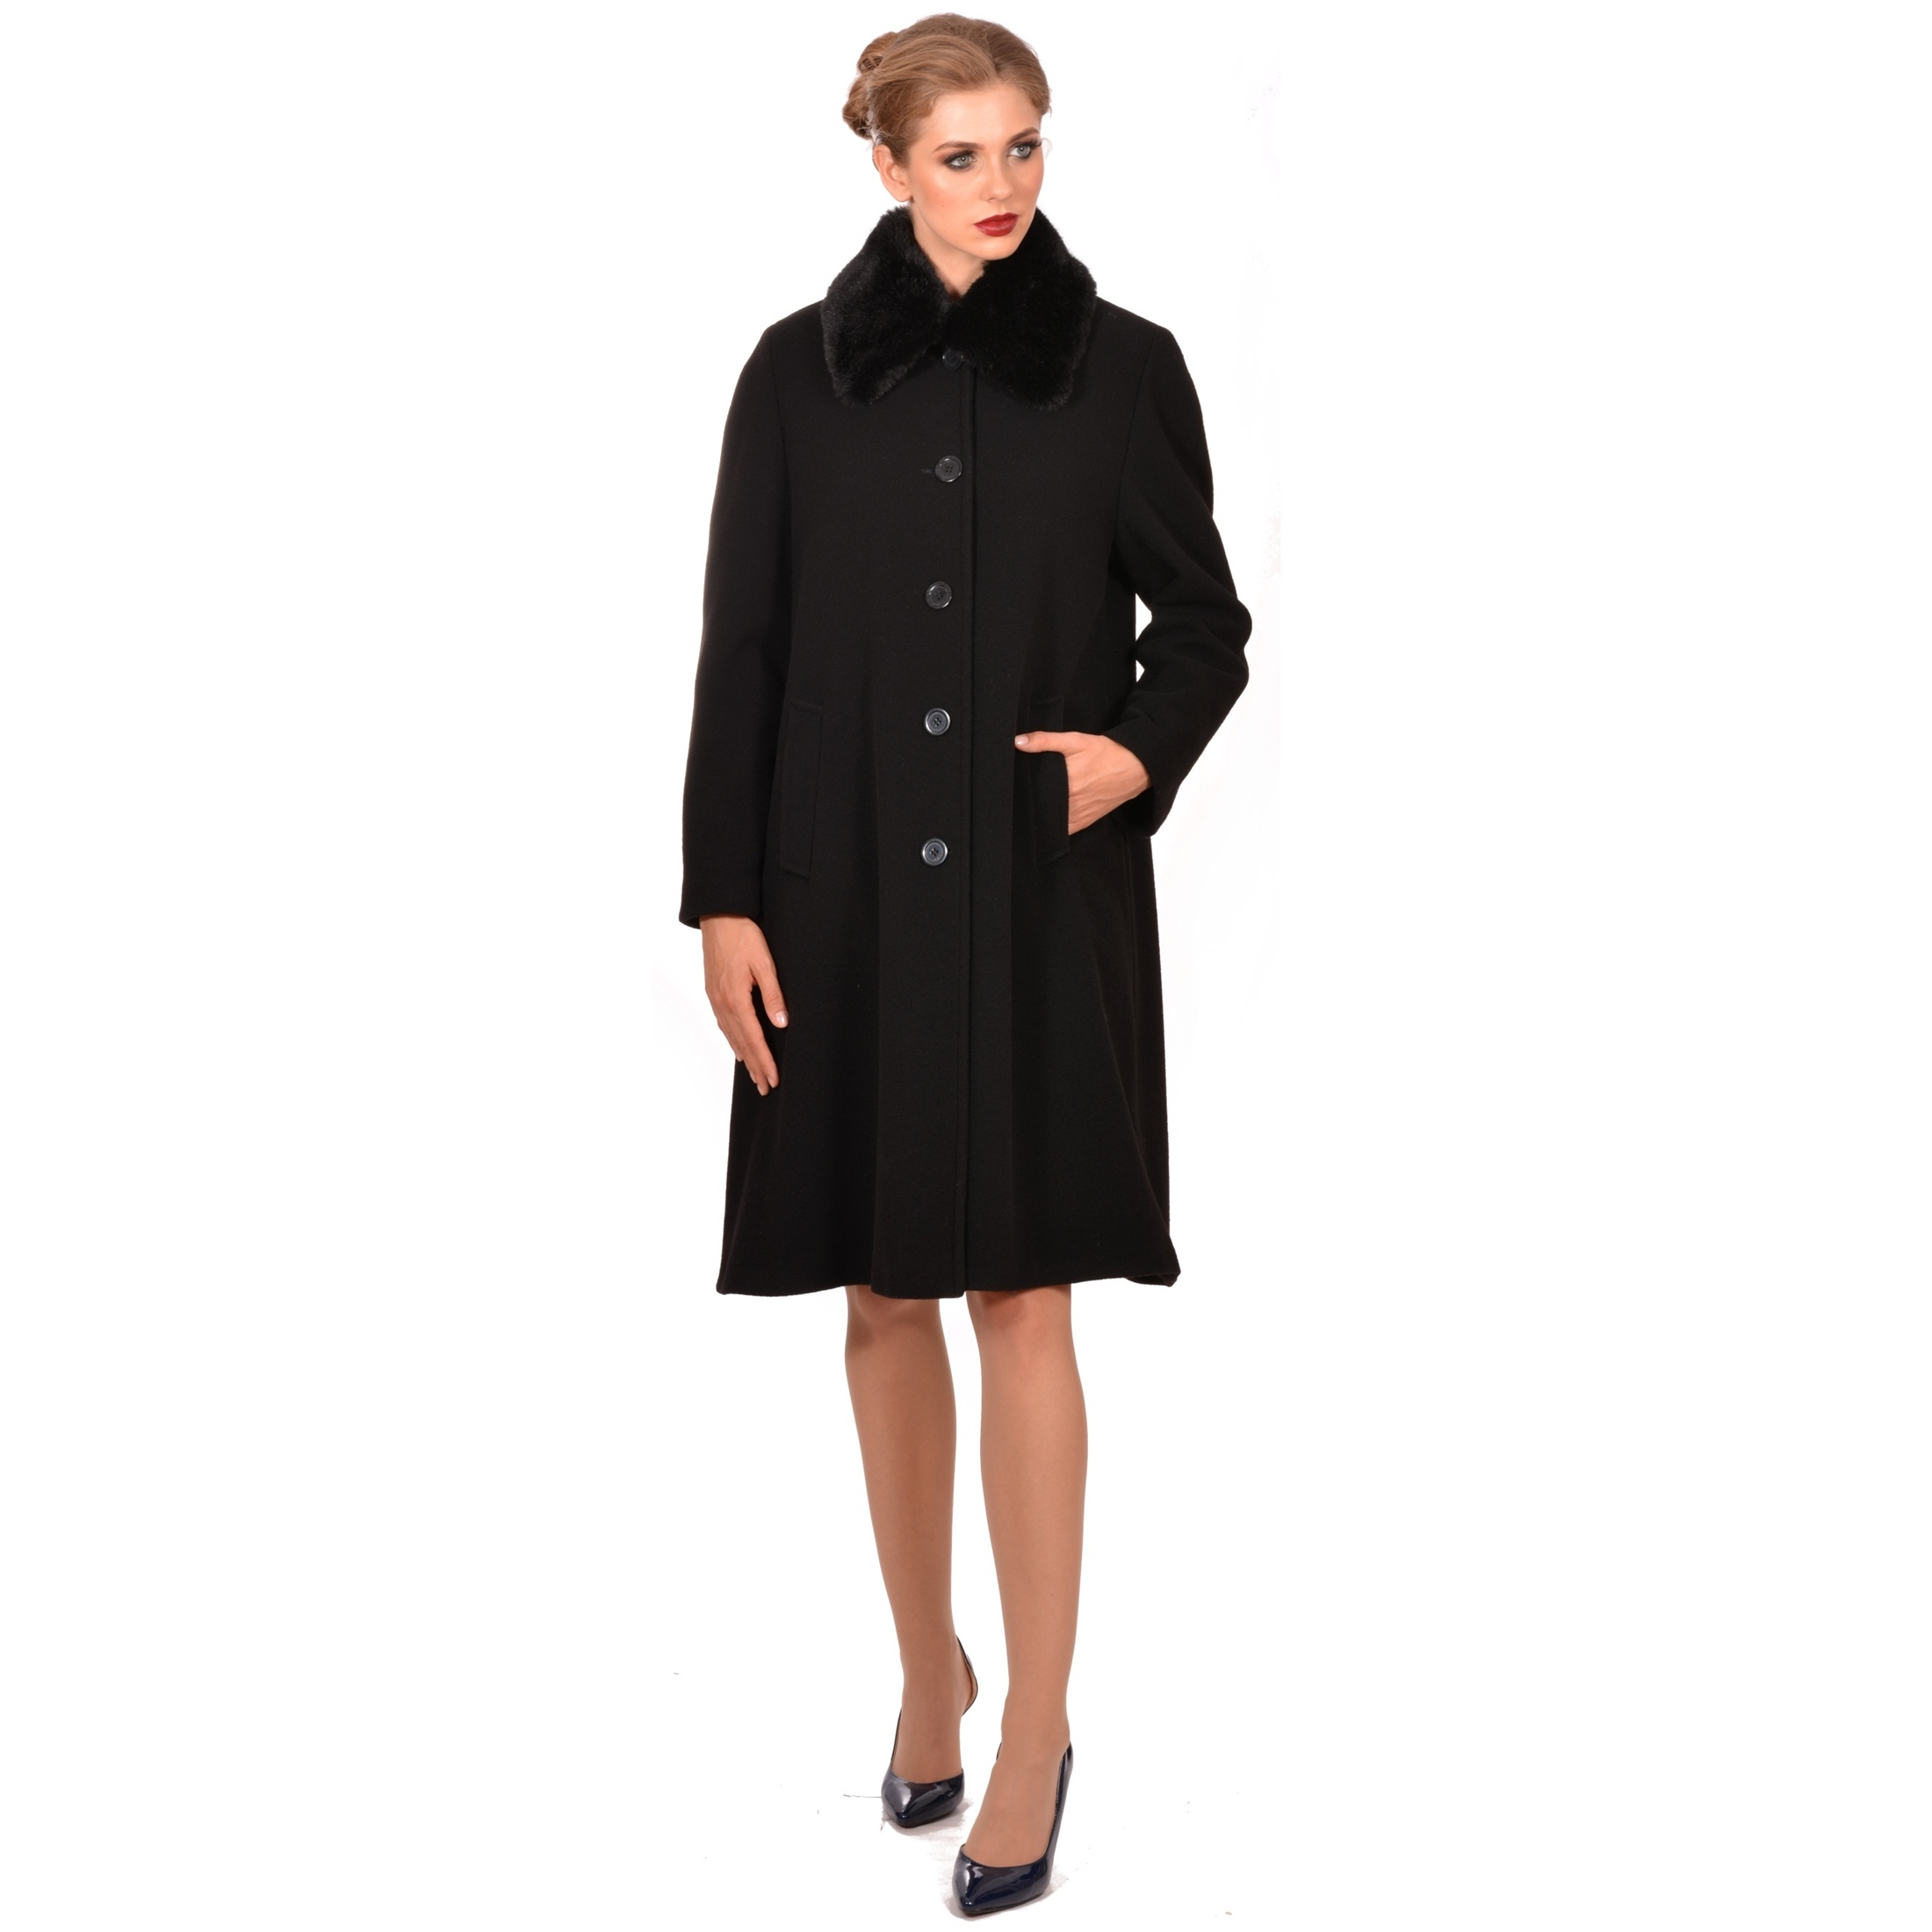 lady m women's black classic knee-long coat, lady m klasični ženski kaput